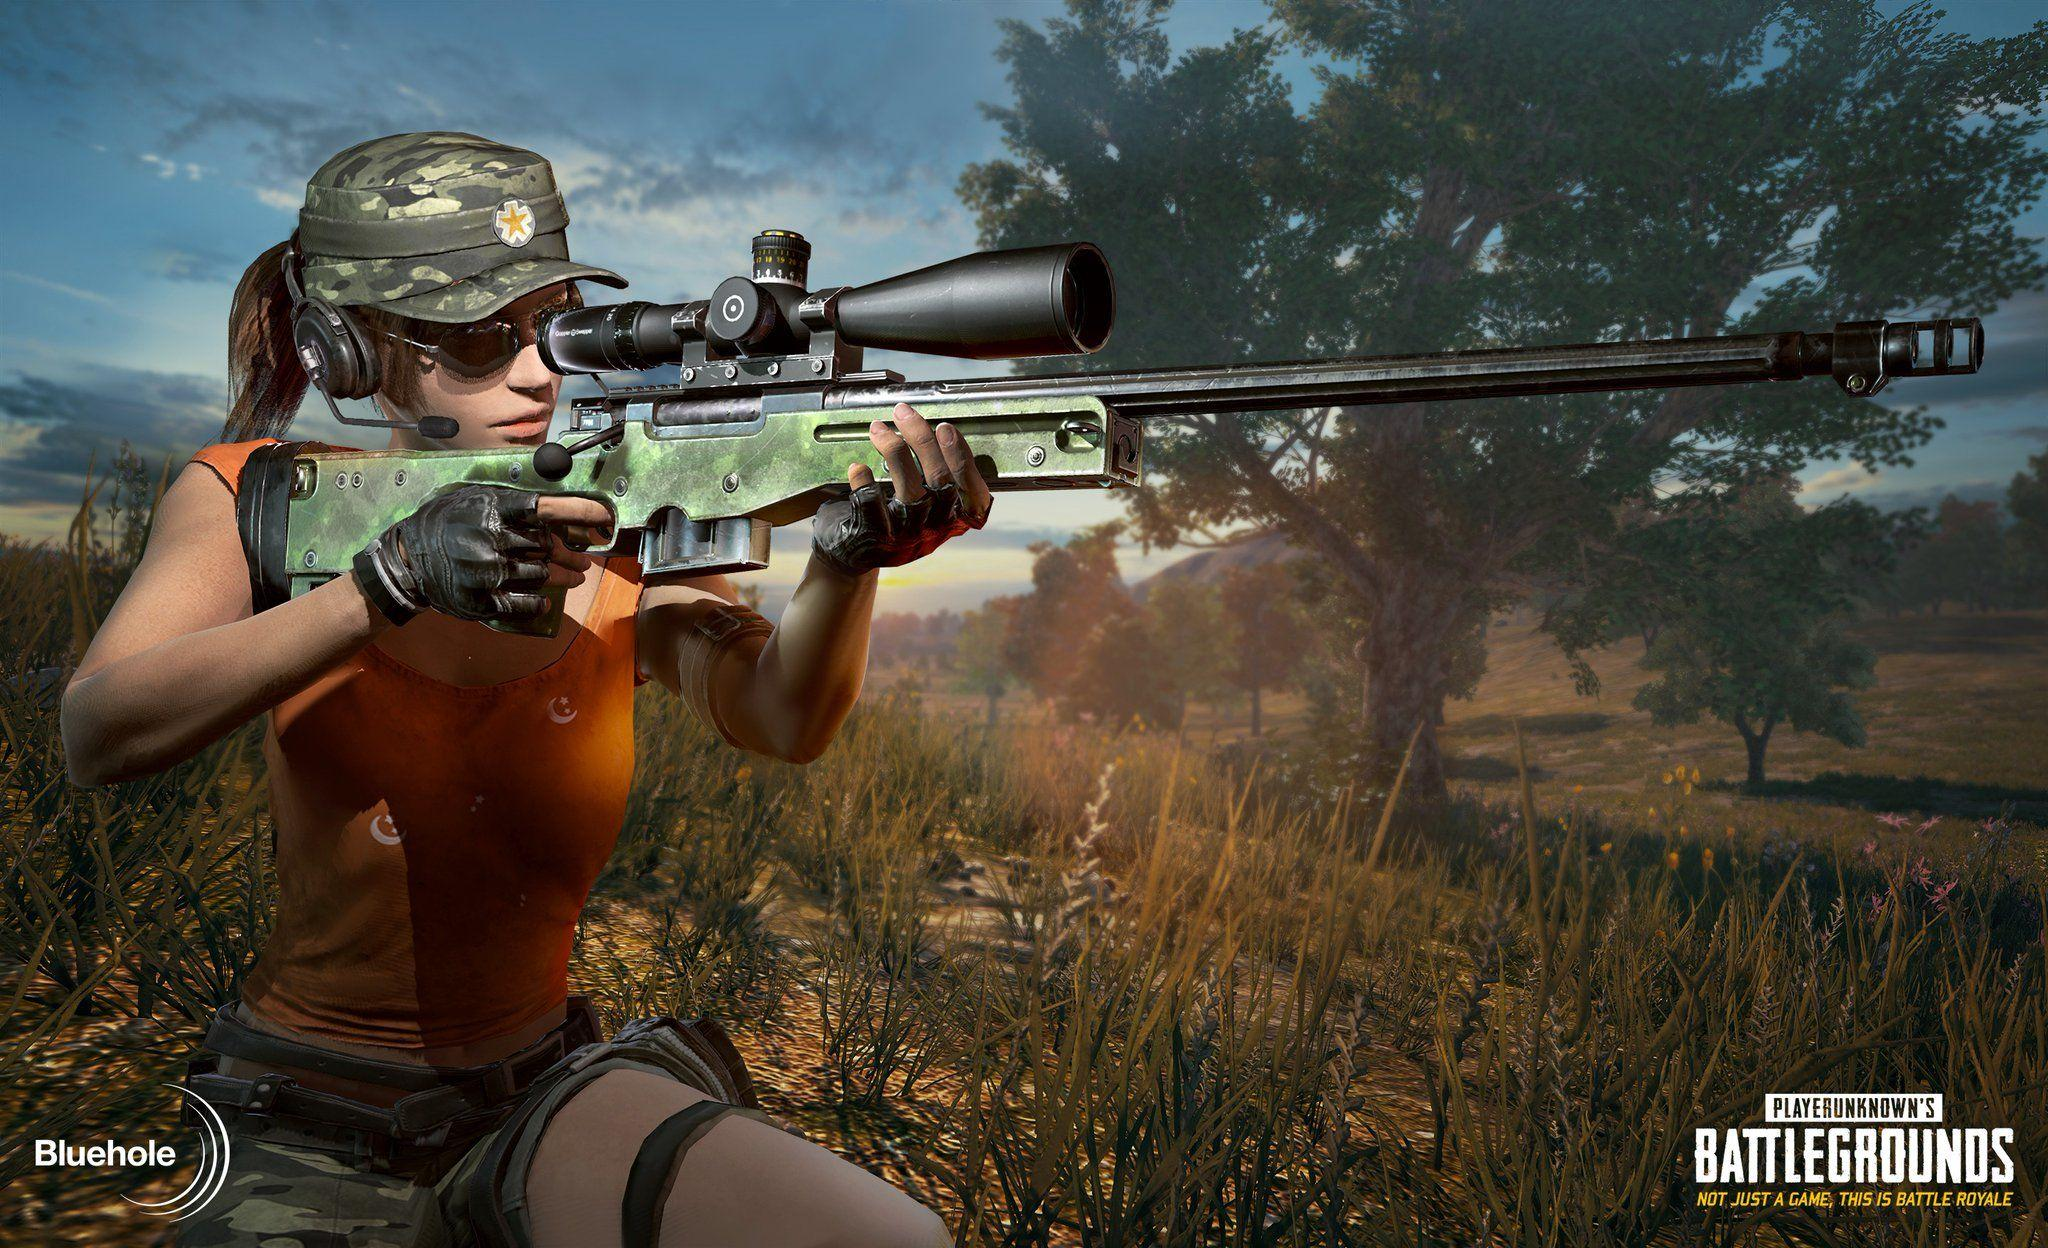 Download Wallpaper From Game PUBG PlayerUnknownu0027s Battlegrounds With .